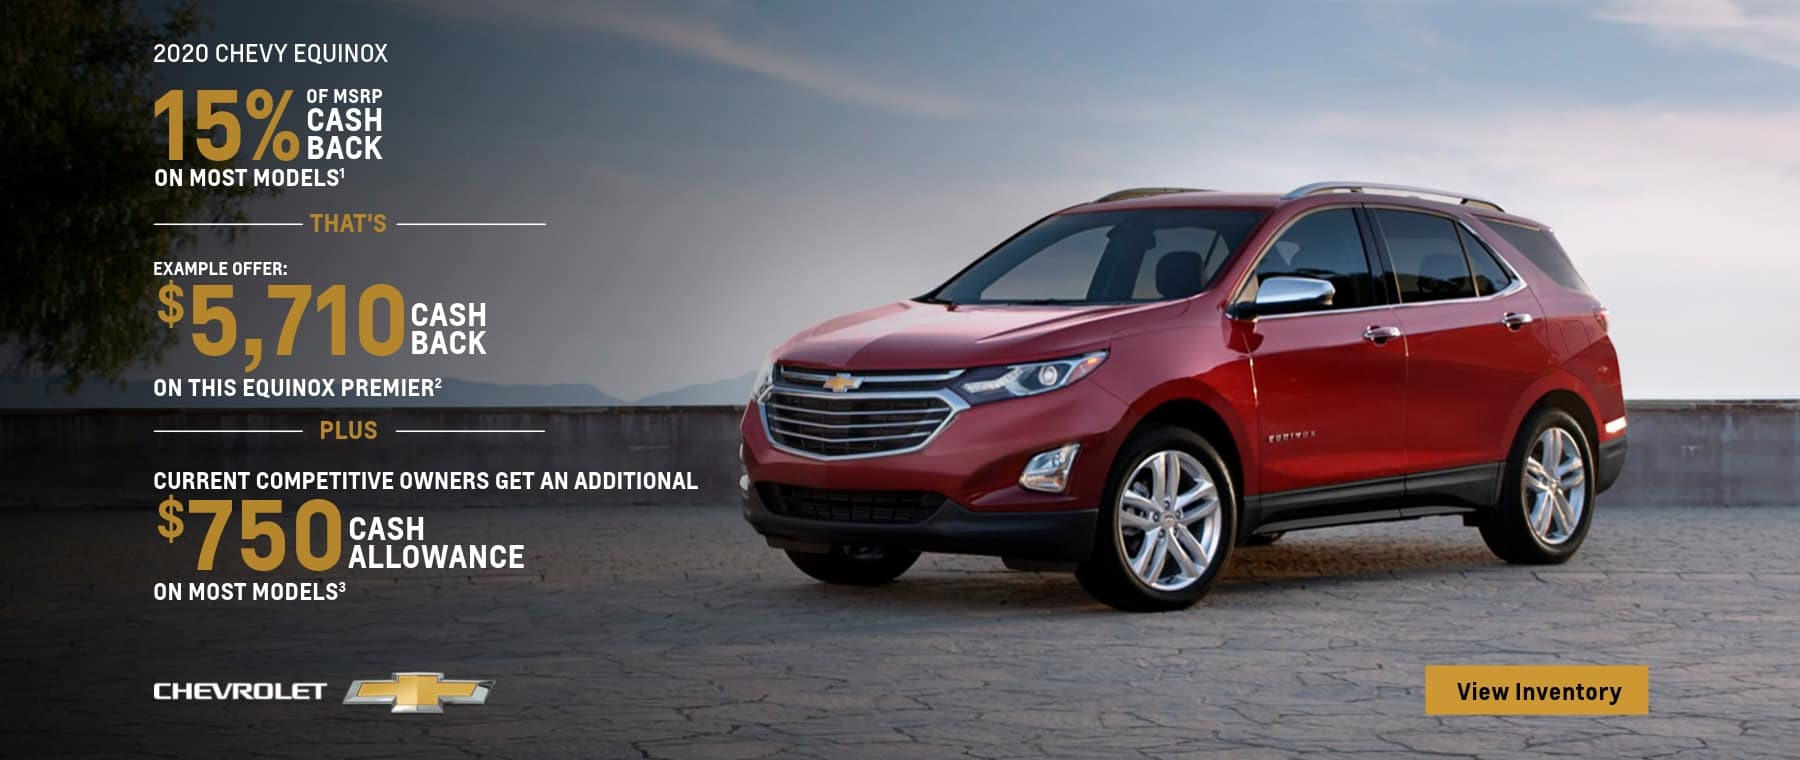 15% Of MSRP Cash Back On Most Models That's Example Offer $5,710 Cash Back on this Equinox Premier Plus Current competitive Owners get an additional $750 Cash Allowance on most models